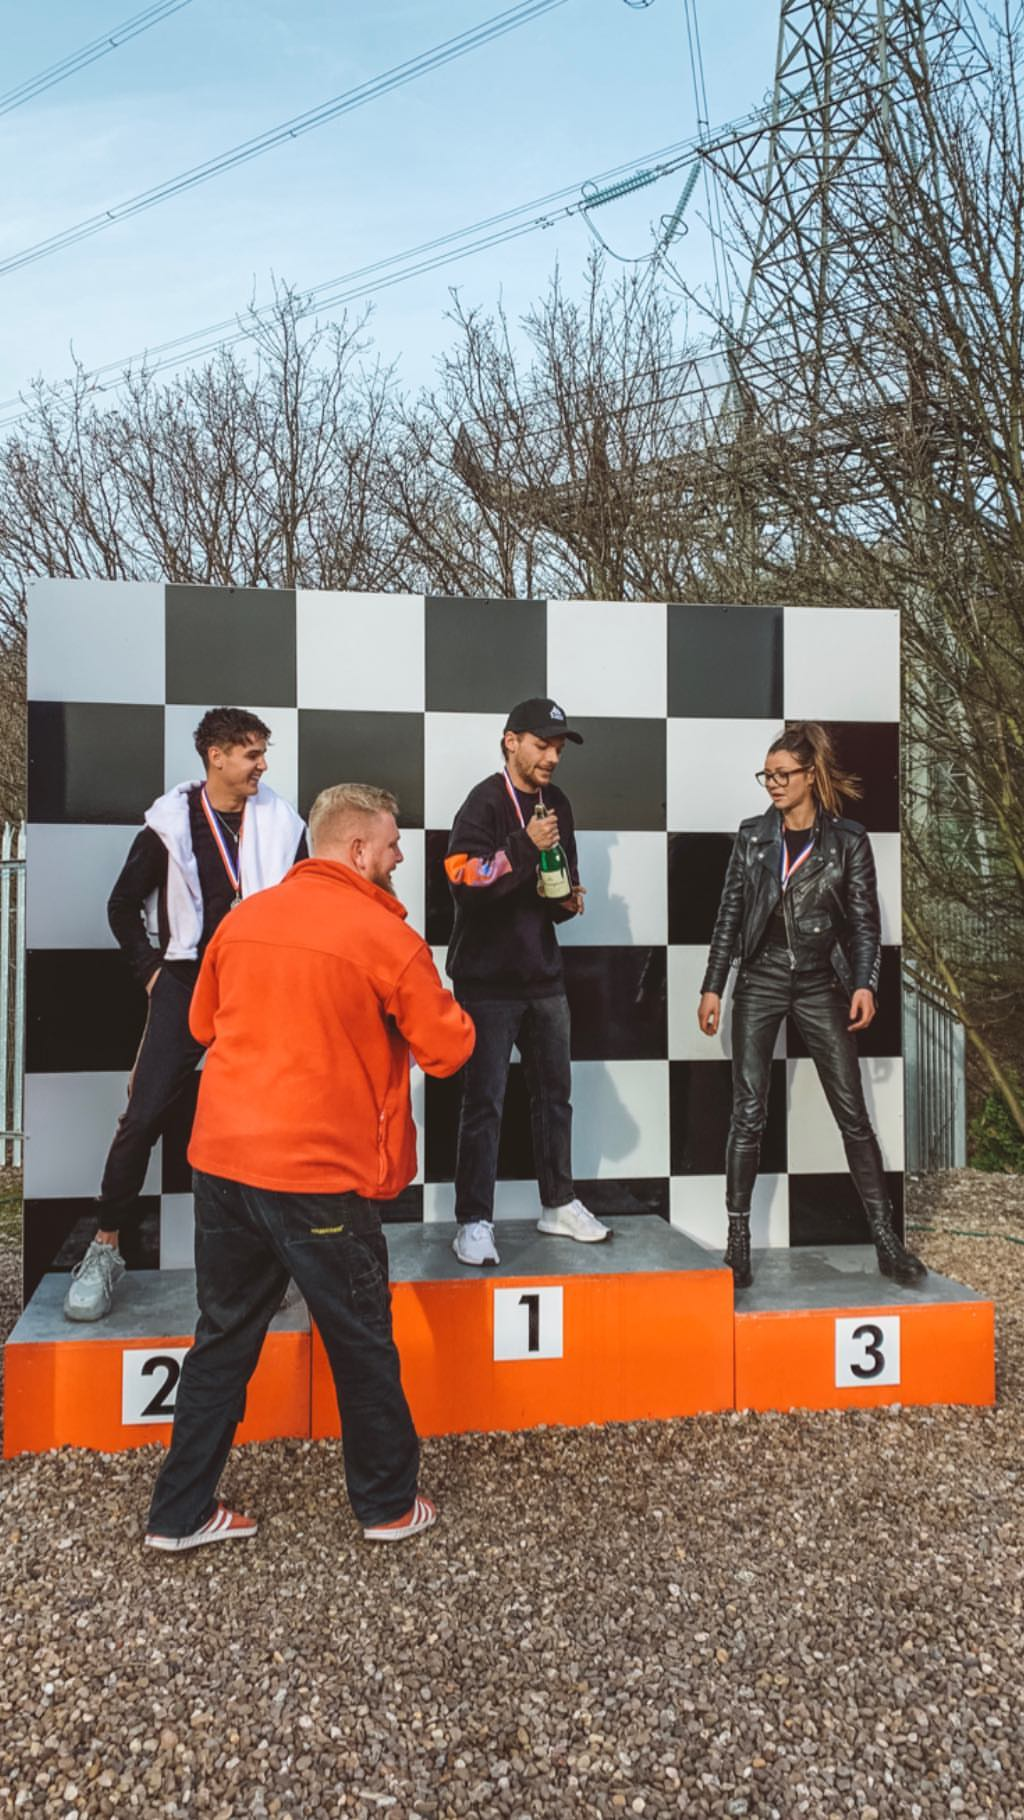 louis tomlinson is crowned the winner while gokarting